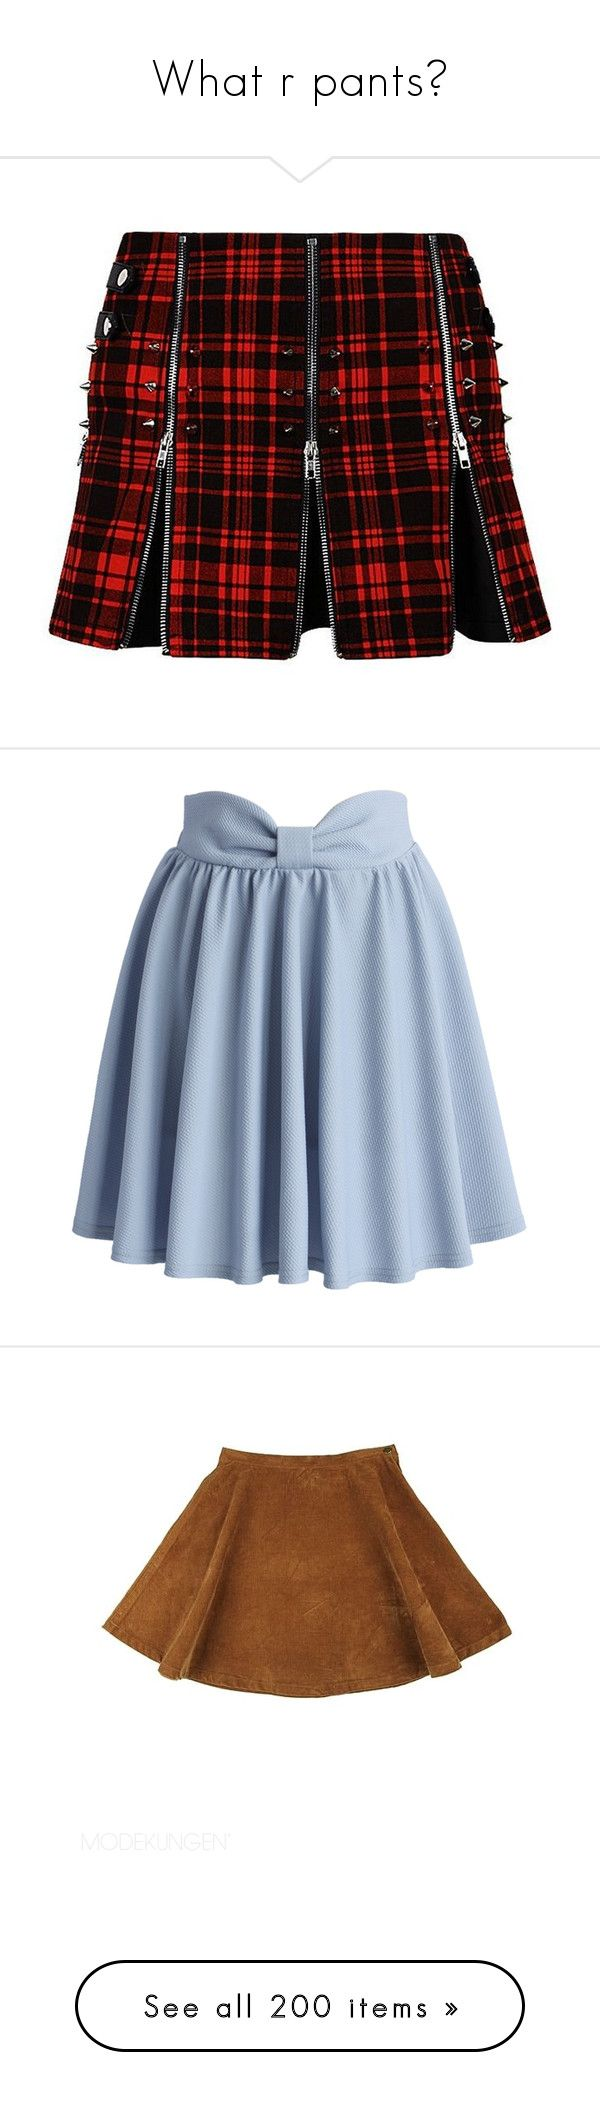 """""""What r pants?"""" by ugly-boi ❤ liked on Polyvore featuring skirts, mini skirts, bottoms, short plaid skirt, gothic skirts, plaid miniskirts, plaid mini skirt, plaid skirt, saias and blue"""